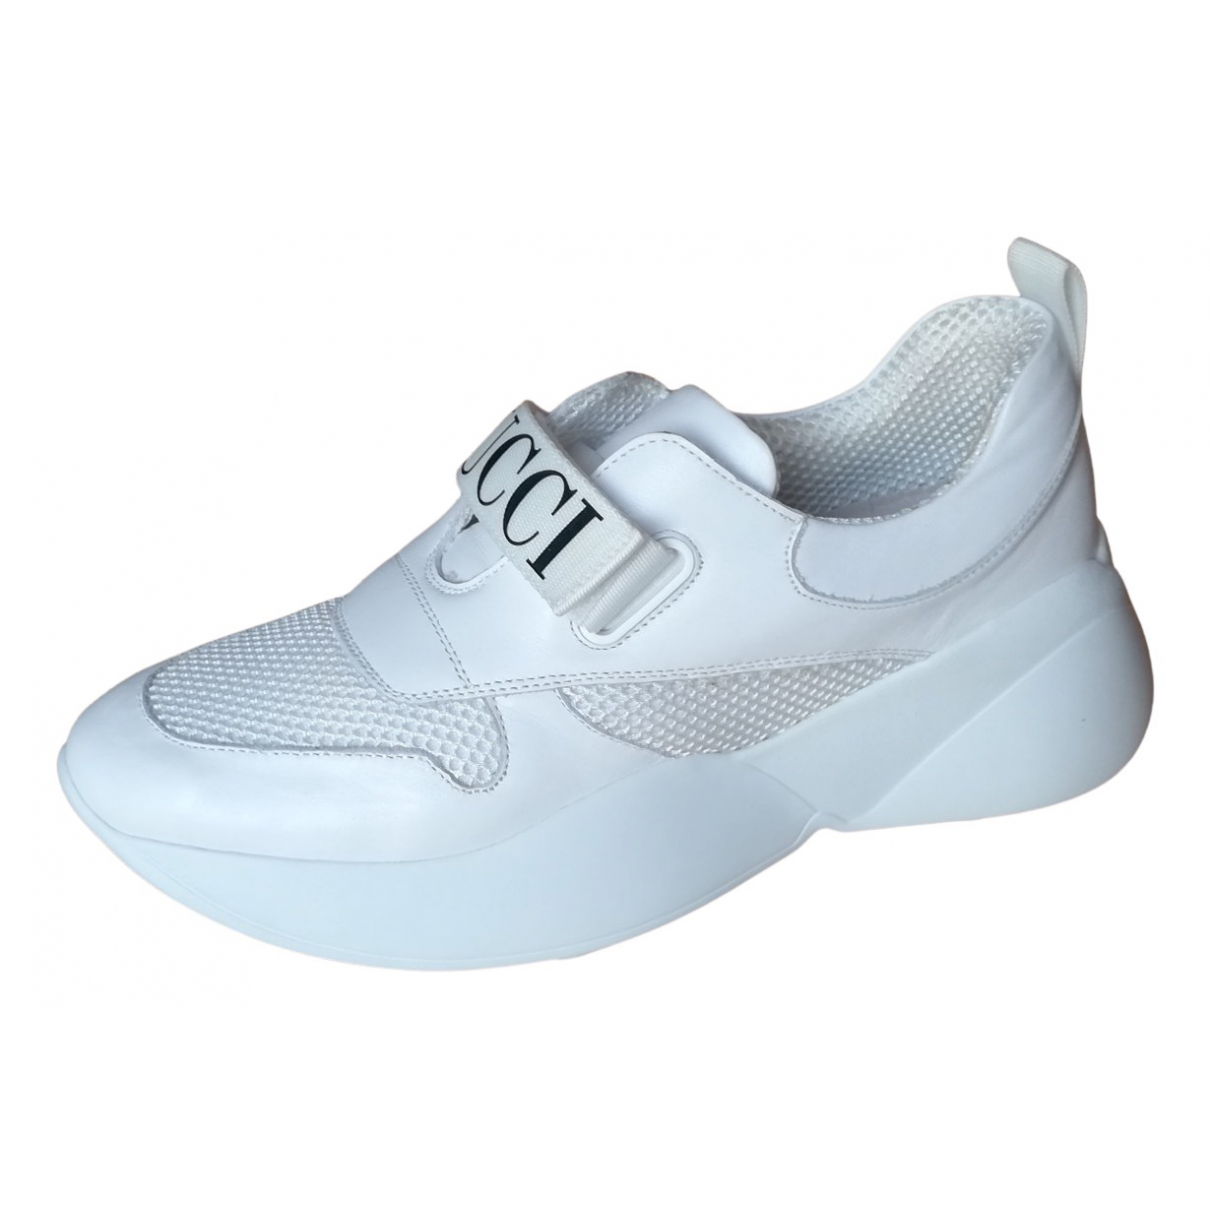 Emilio Pucci \N Sneakers in  Weiss Polyester